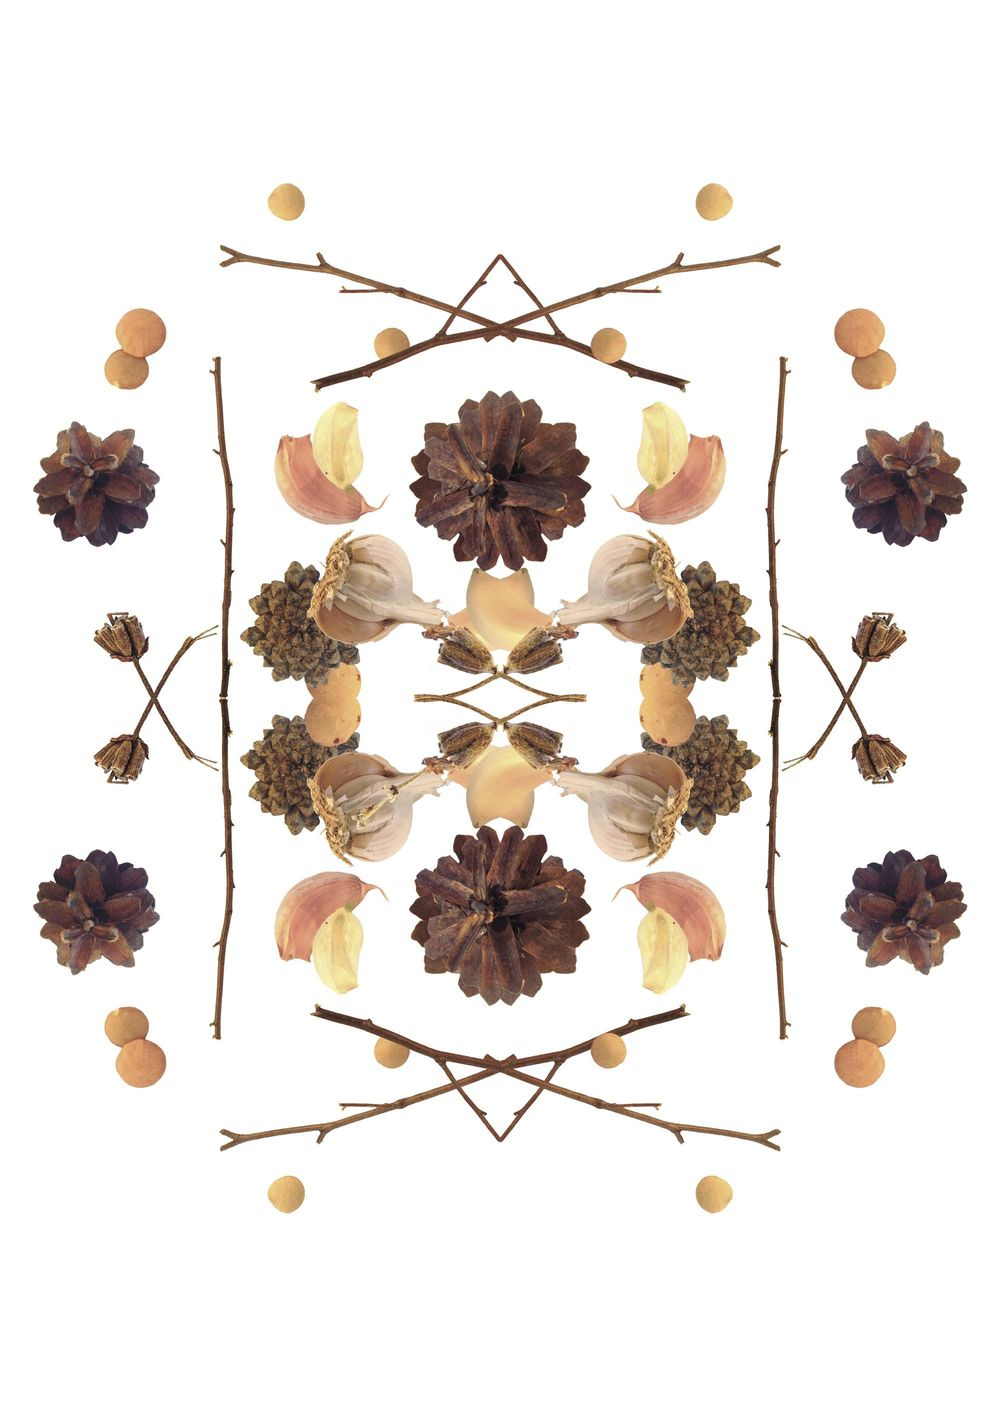 branches, garlic, cones and lentil - image 2 - student project